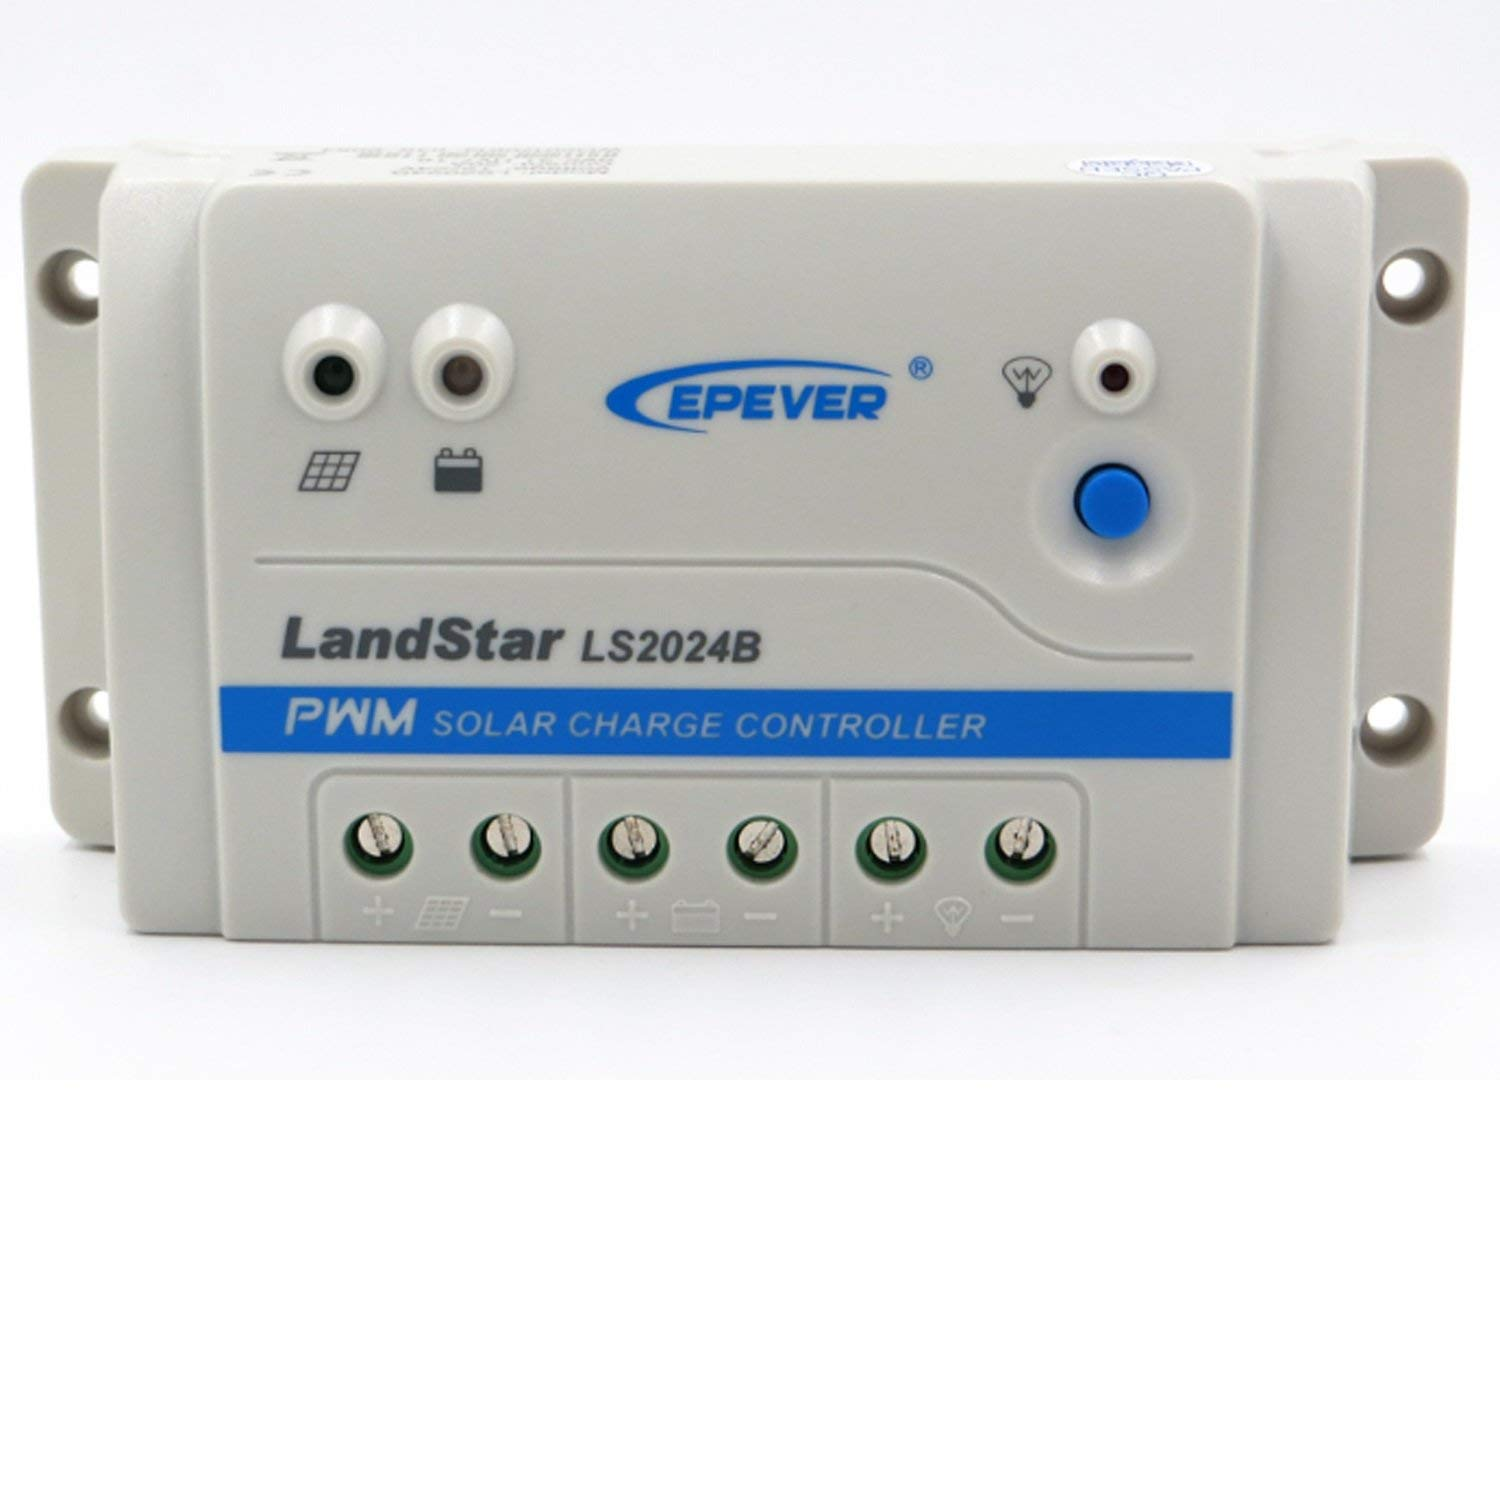 Solar Charge Controller PWM LS1024B LS2024B LS3024B 12V/24V Auto Work for Solar Lighting System Multiple Load Working Modes Manual Control, Light ON/Off, Timer (Style : 20A LS2024B)